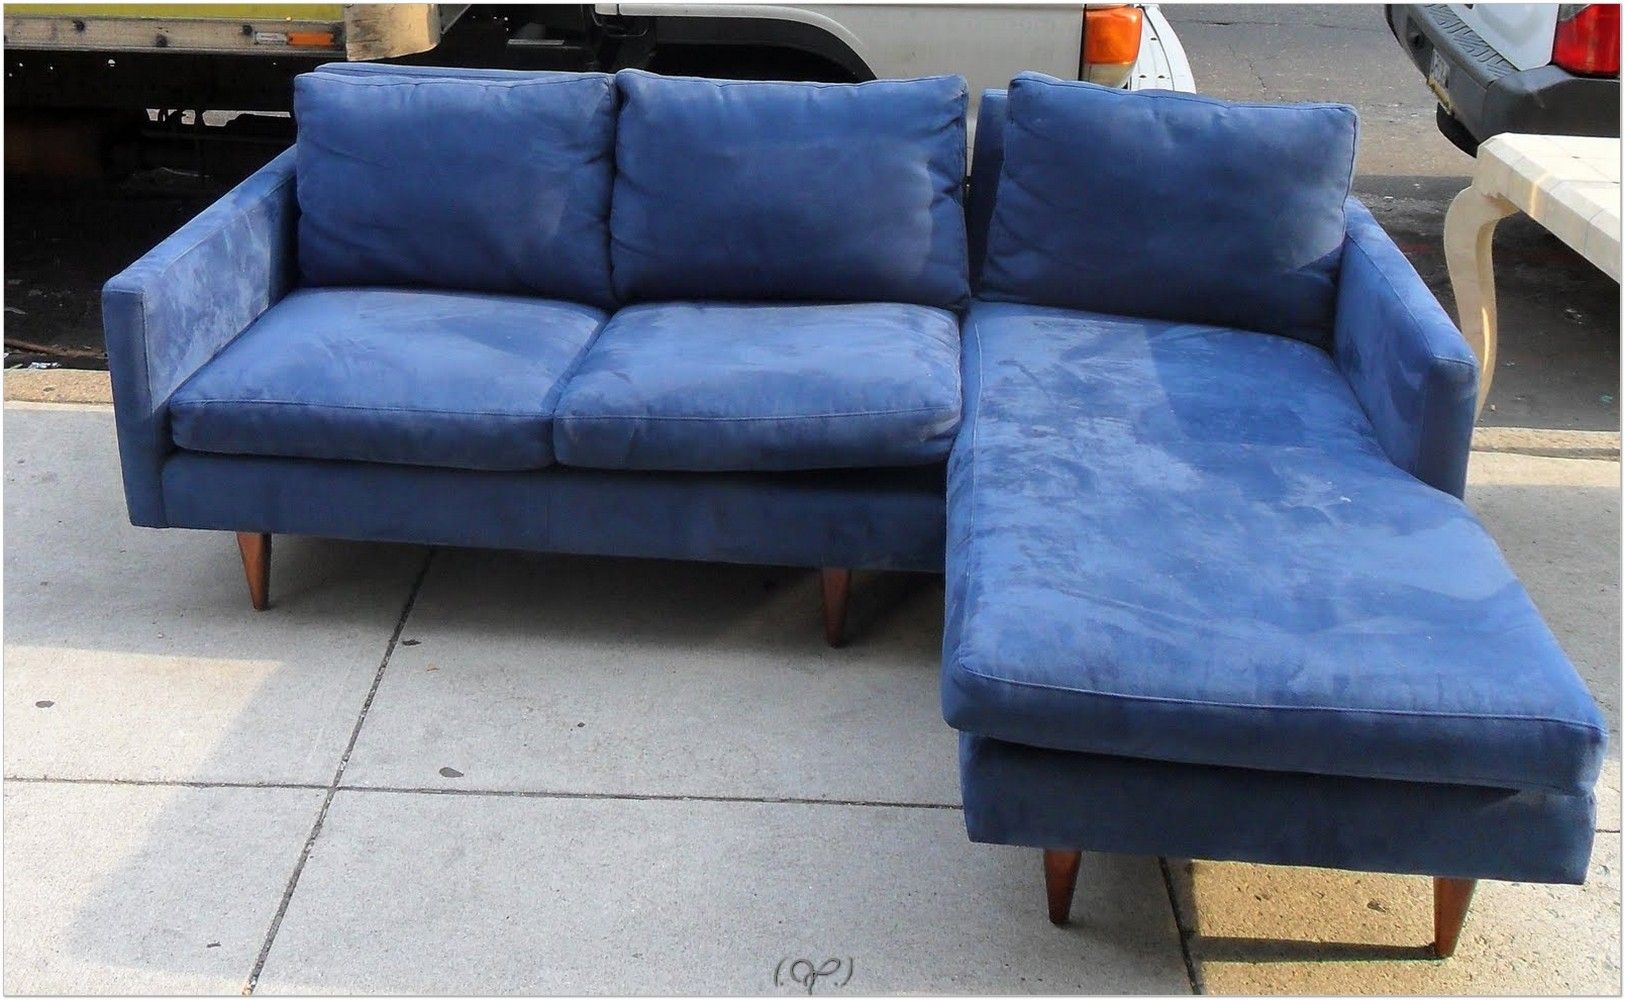 Marvelous Royal Blue Sectional Wooden Sofa Set Designs Royal Blue Spiritservingveterans Wood Chair Design Ideas Spiritservingveteransorg